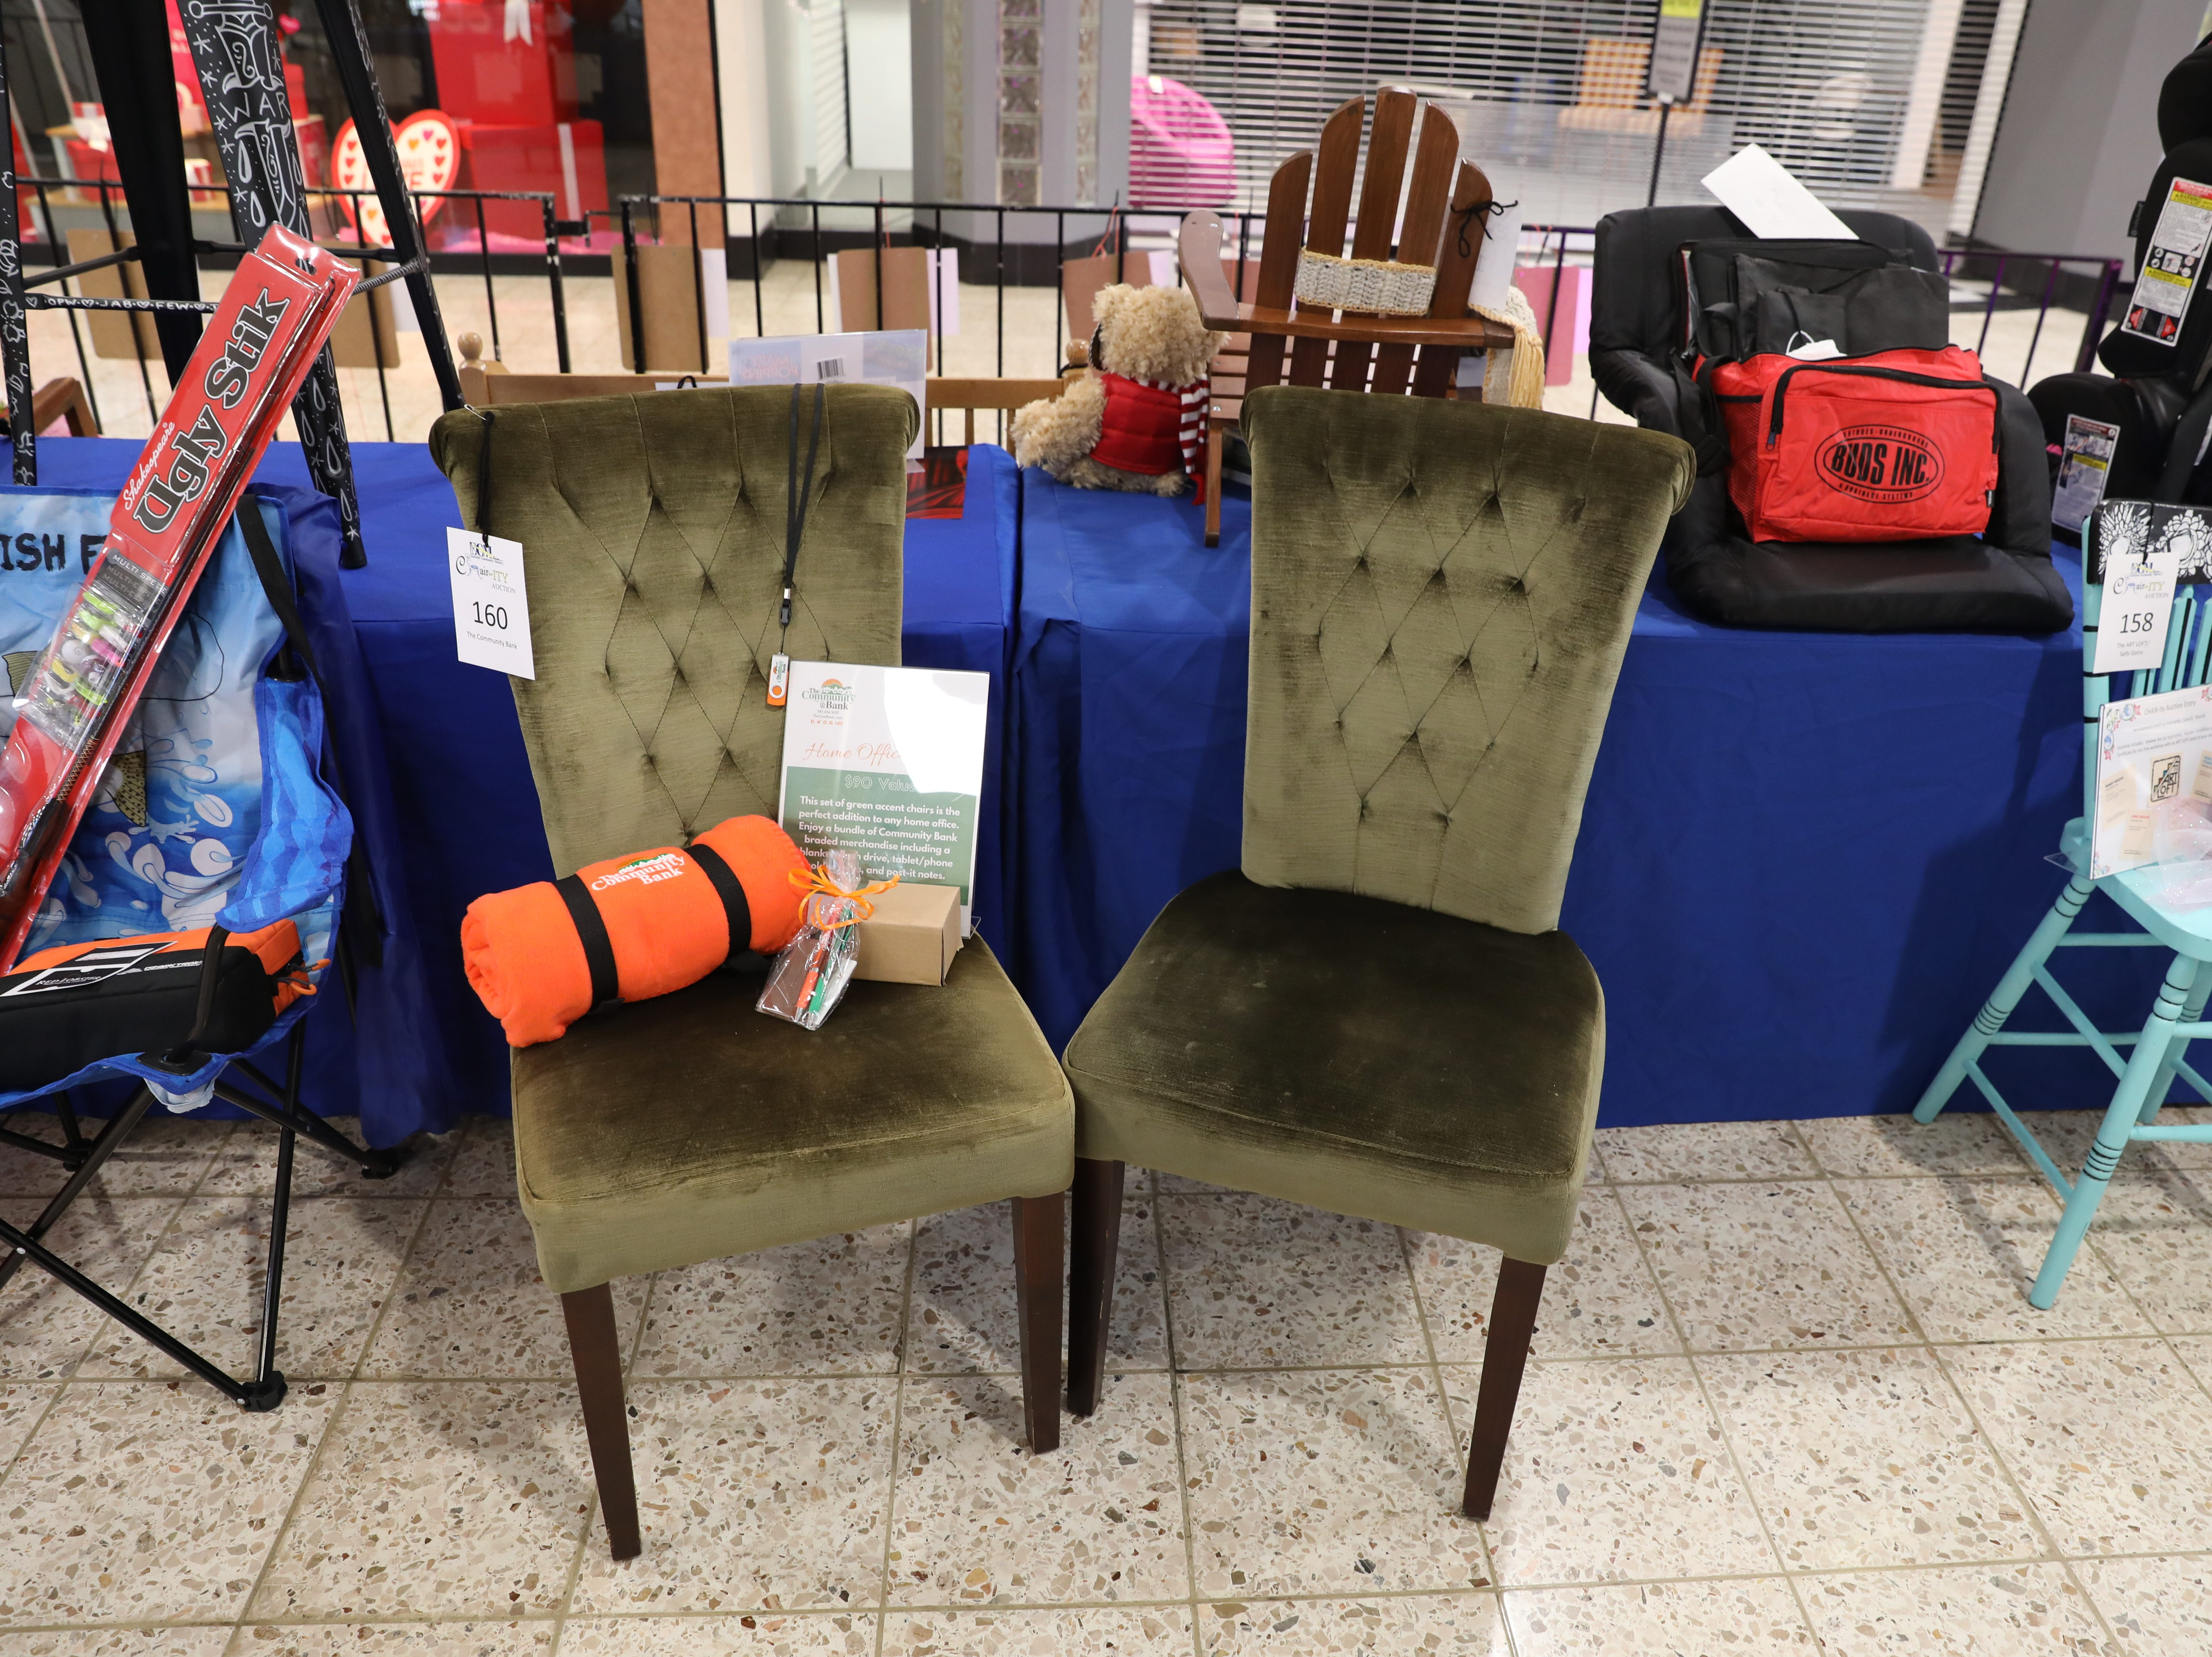 Chairs in the silent auction for Eastside Community Ministries' CHAIR-ity auction. Each chair comes with an incentive. Bids will be accepted until 6 p.m. Saturday. The auction is at the Colony Square Mall.